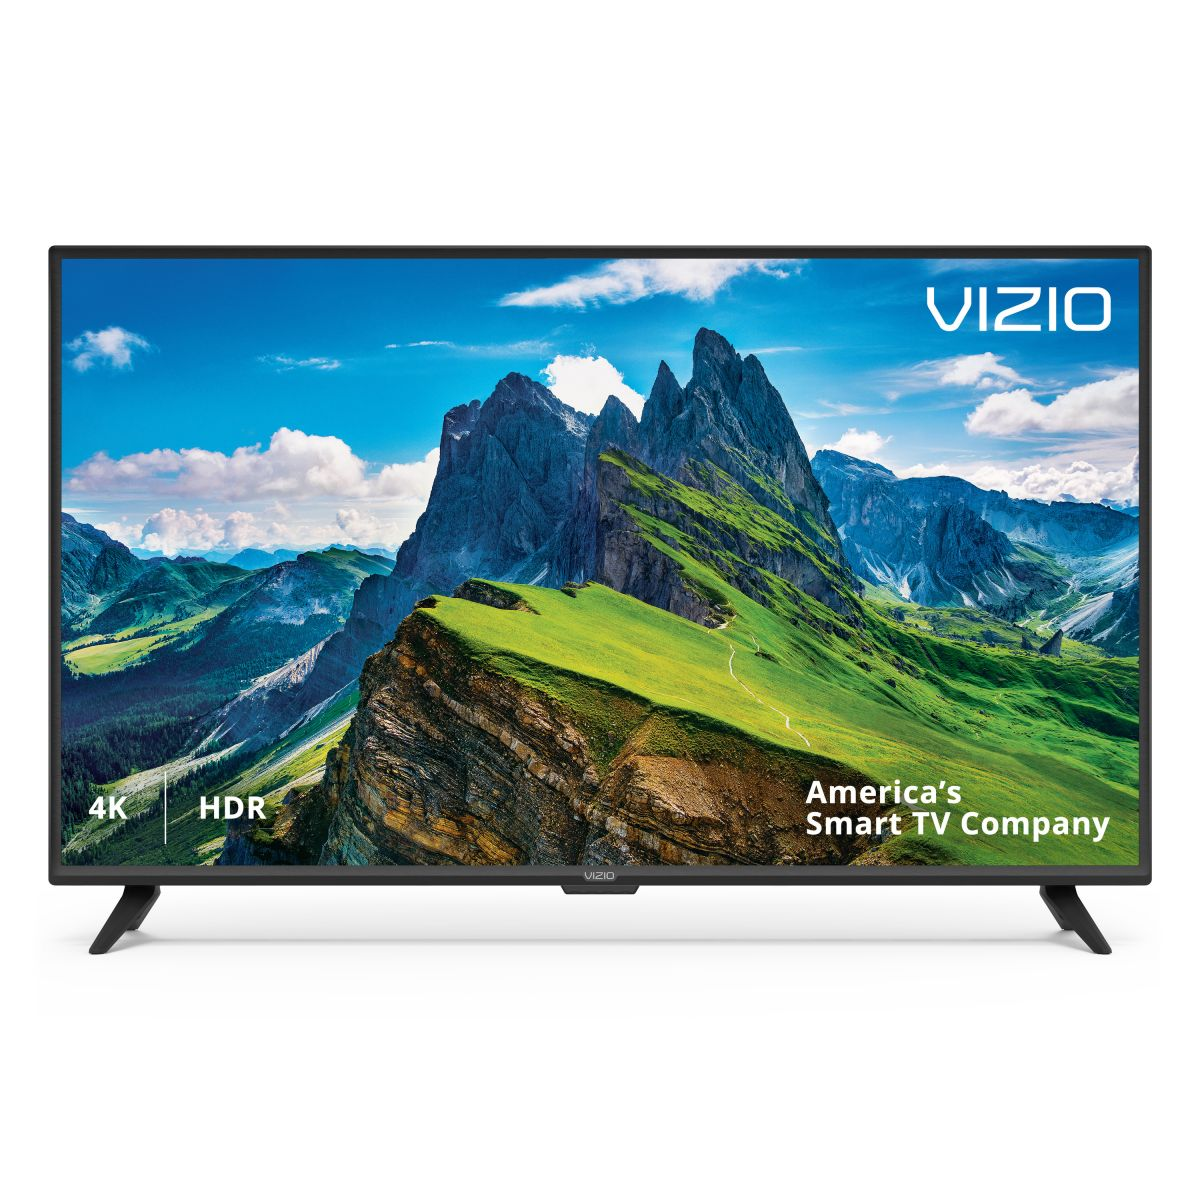 1f0e3bac0 The best cheap 4K TV deals and sale prices in the US - June 2019 ...